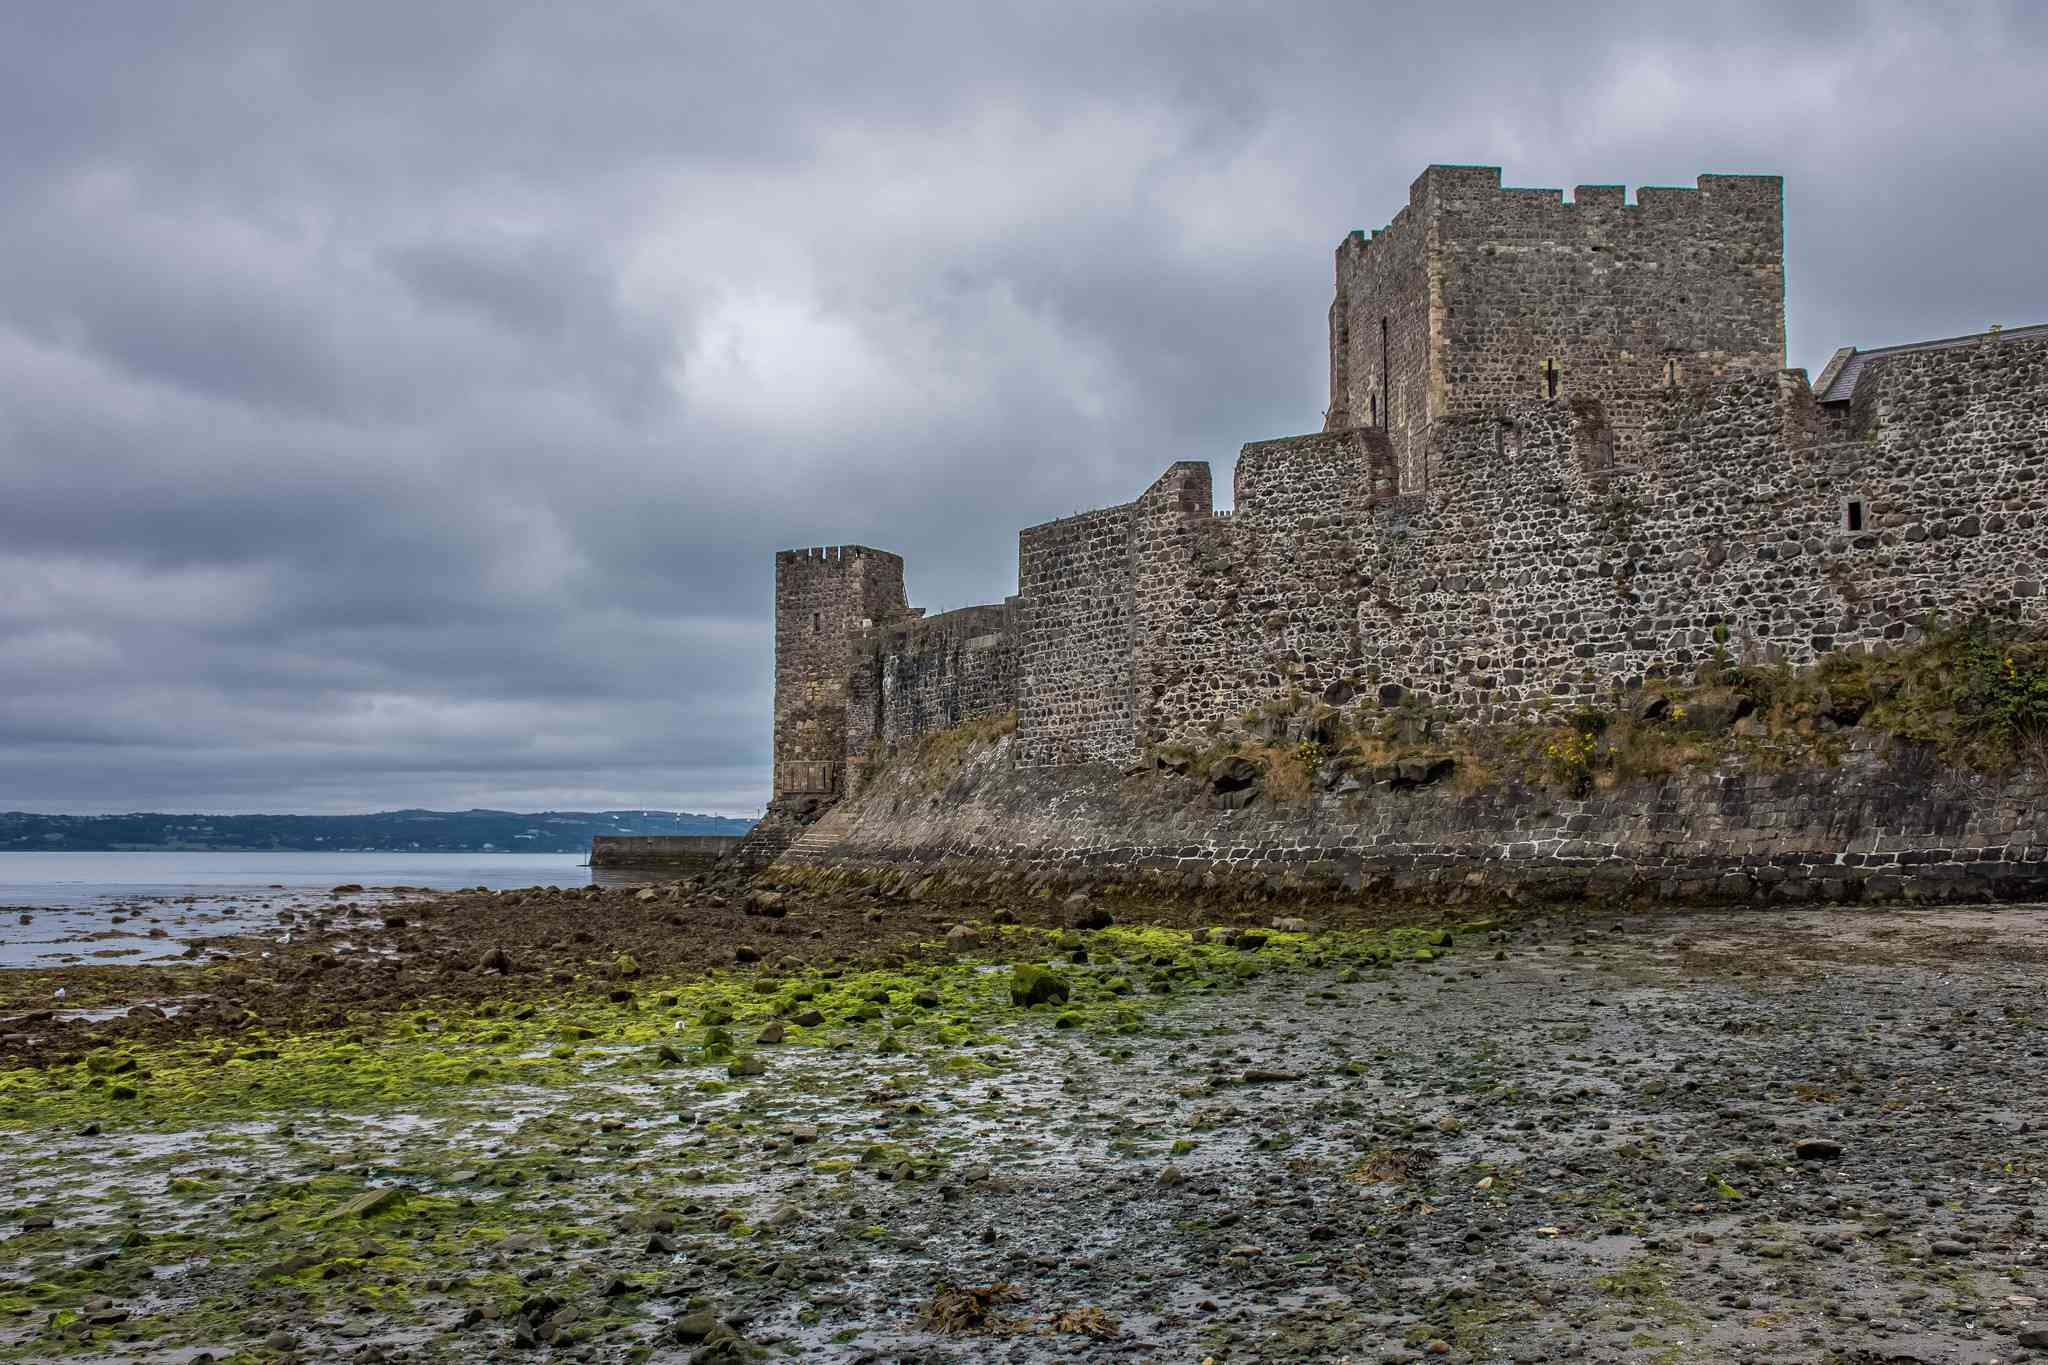 stone walls of carrickfergus castle on marshy land with belfast lough in the background